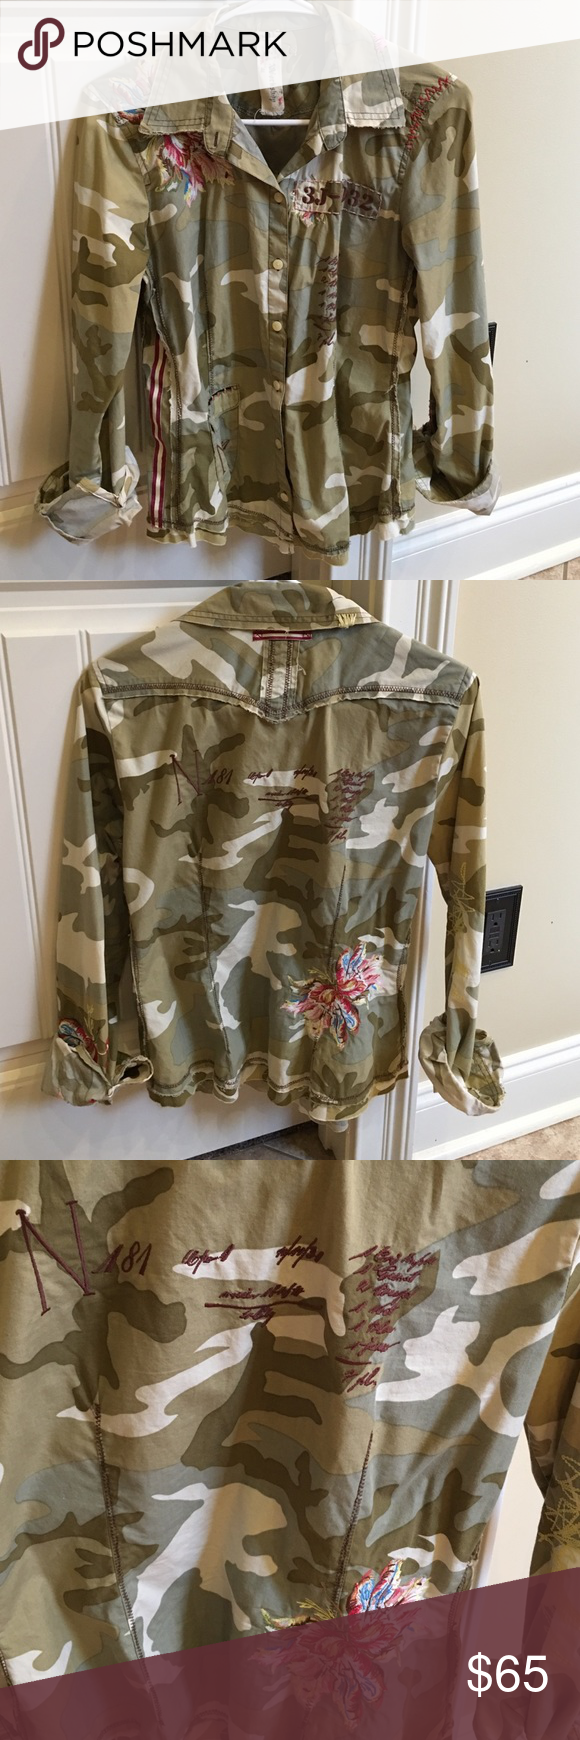 Johnny Was Floral Camo Shirt Very cool details on this 3J Johnny Was shirt. Only selling because doesn't fit quite right. Price firm. Johnny Was Tops Button Down Shirts